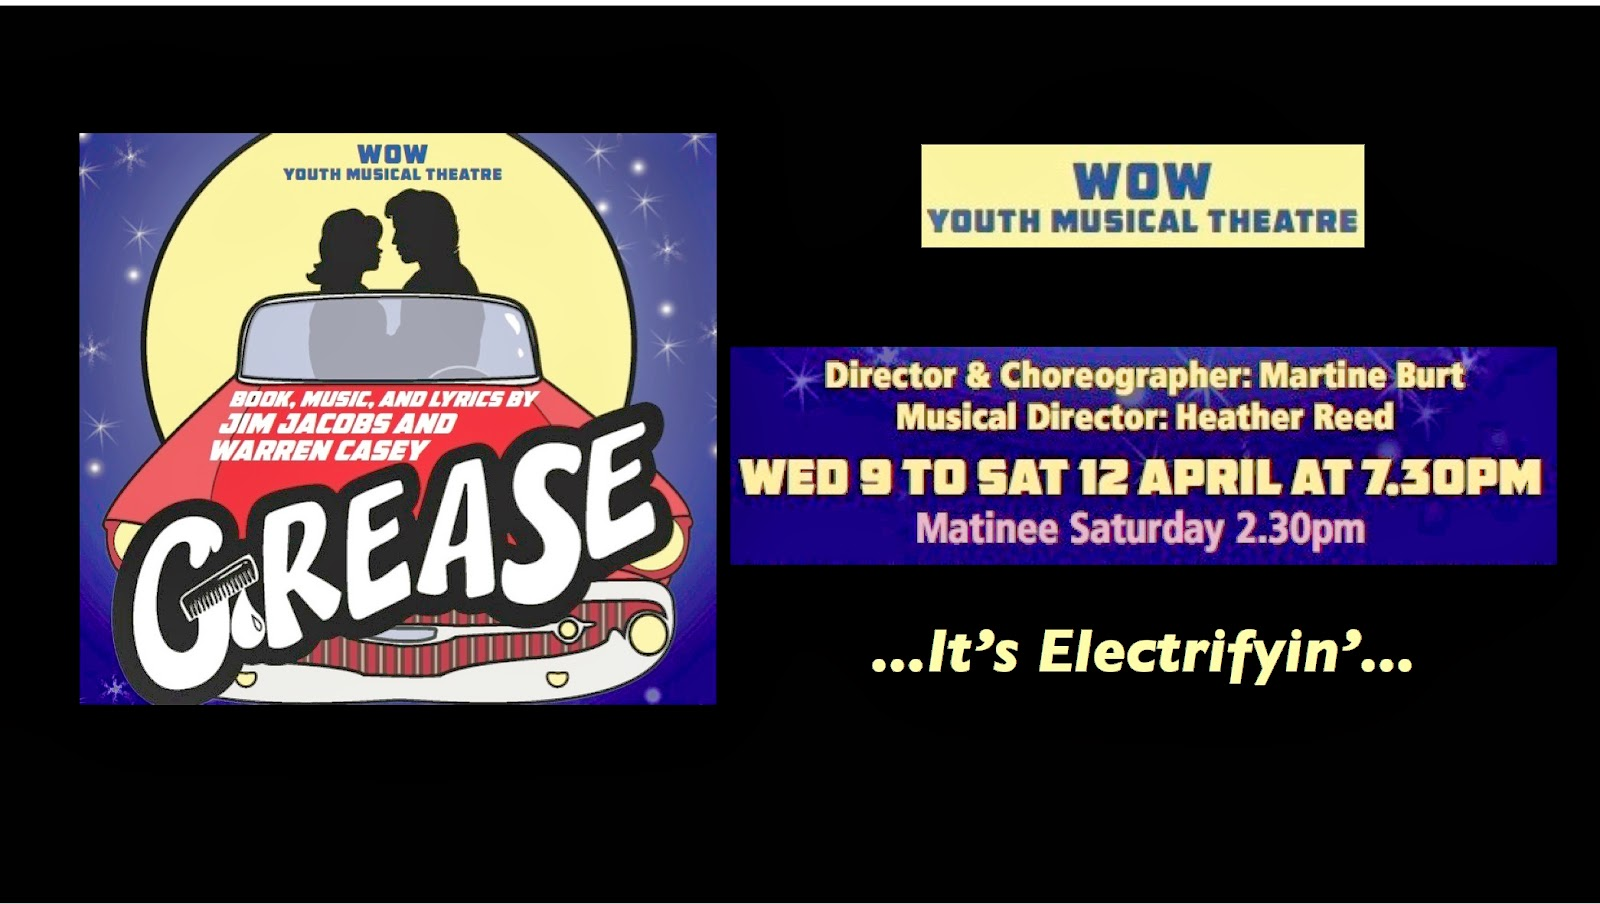 WOW WOW WOW Grease Weymouth Pavilion 9th - 12th April 2014